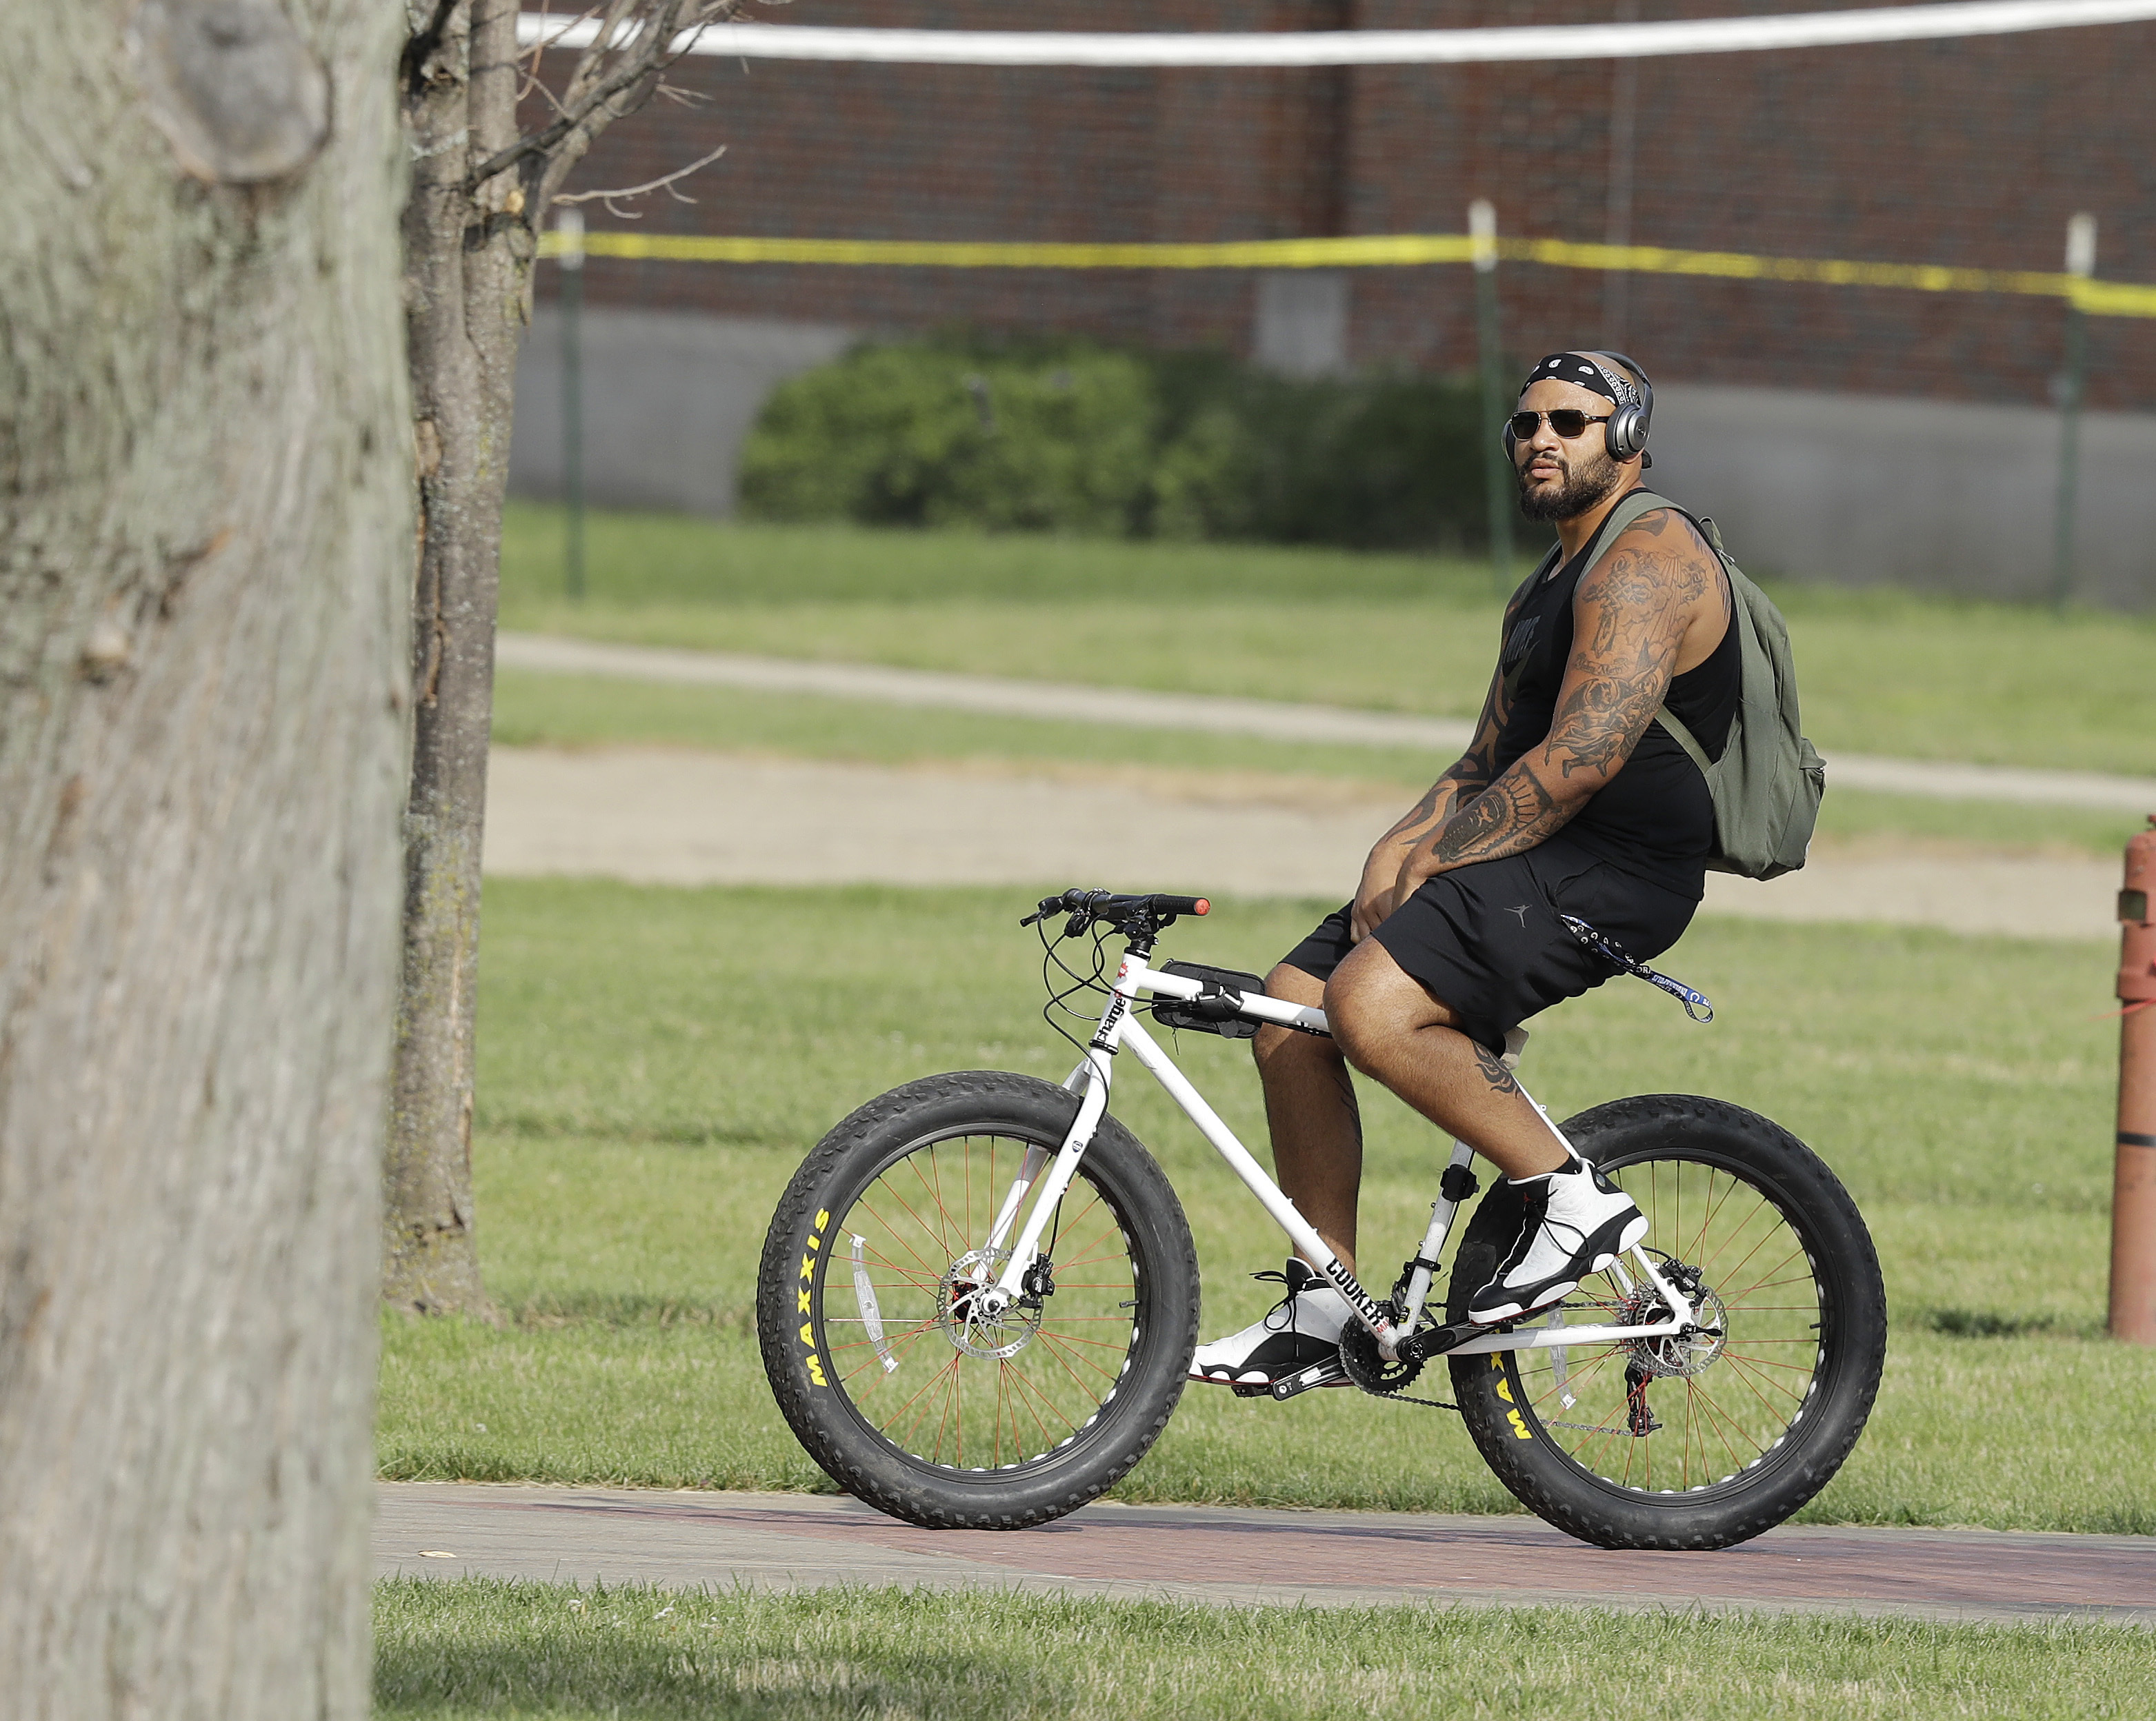 Indianapolis Colts offensive lineman Hugh Thornton rides his bike after arriving for an NFL football training camp, Tuesday, July 26, 2016, in Anderson, Ind. (AP Photo/Darron Cummings)